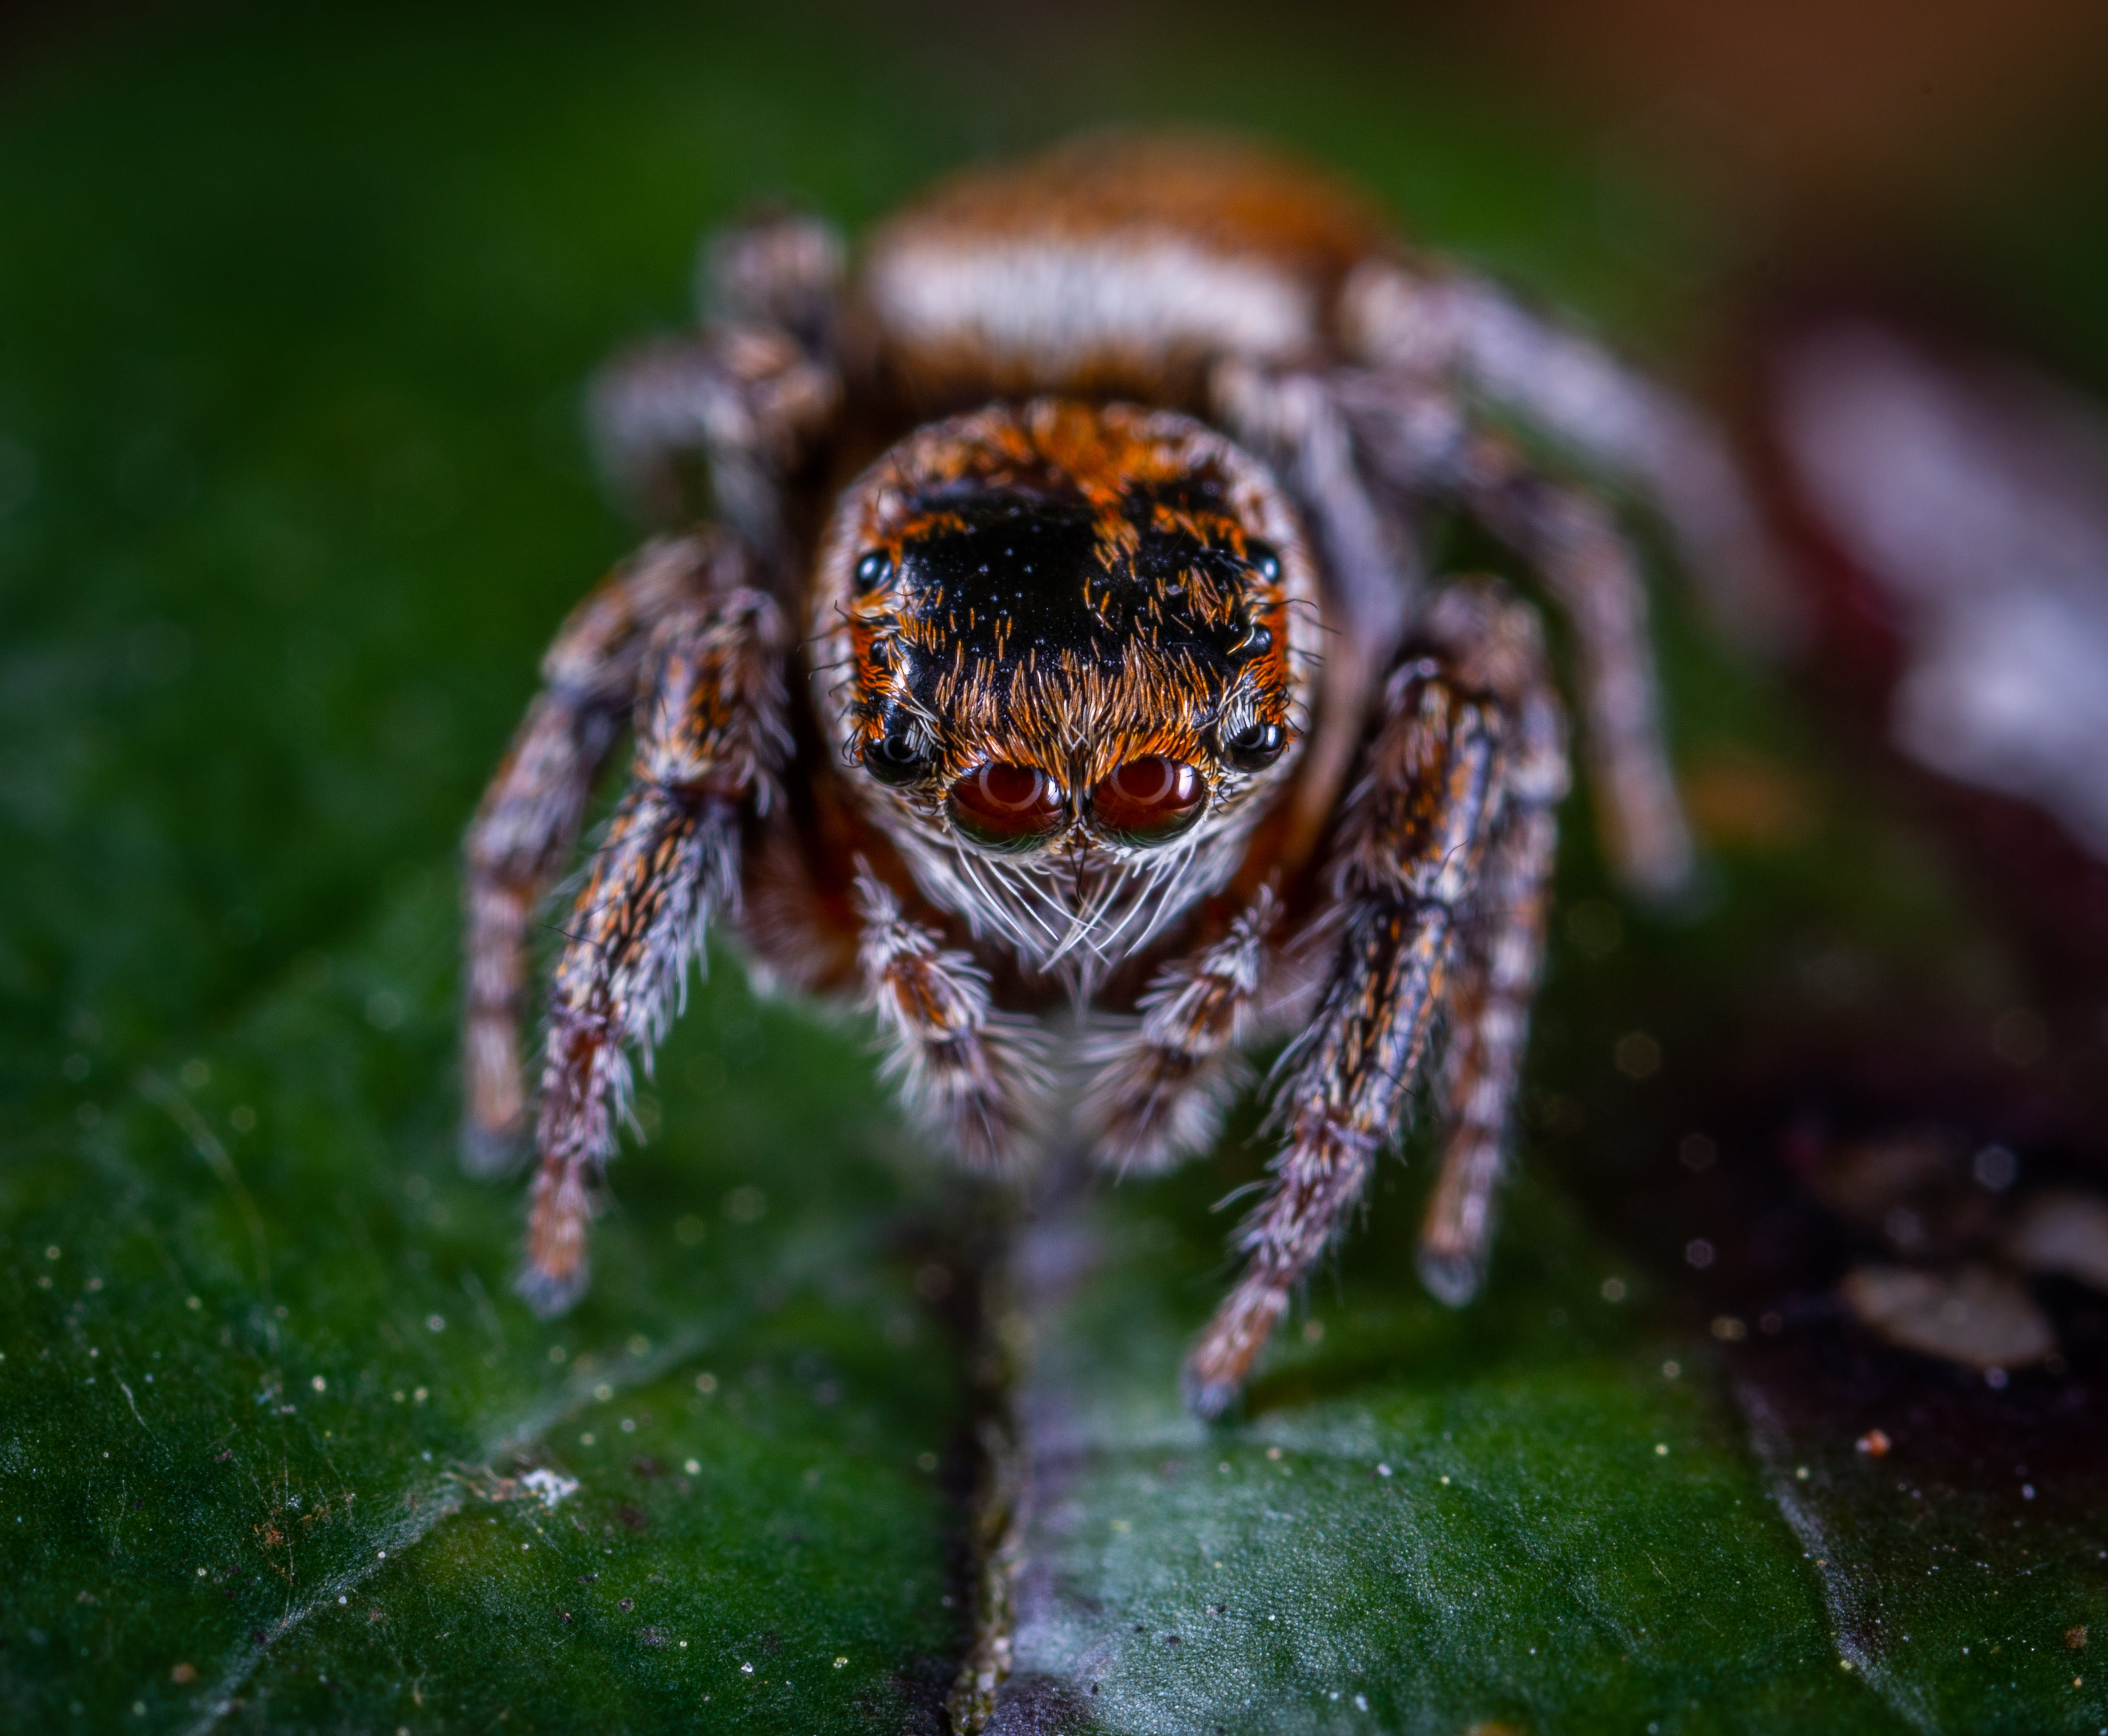 Macro Photography of Brown Jumping Spider Perched on Green Leaf